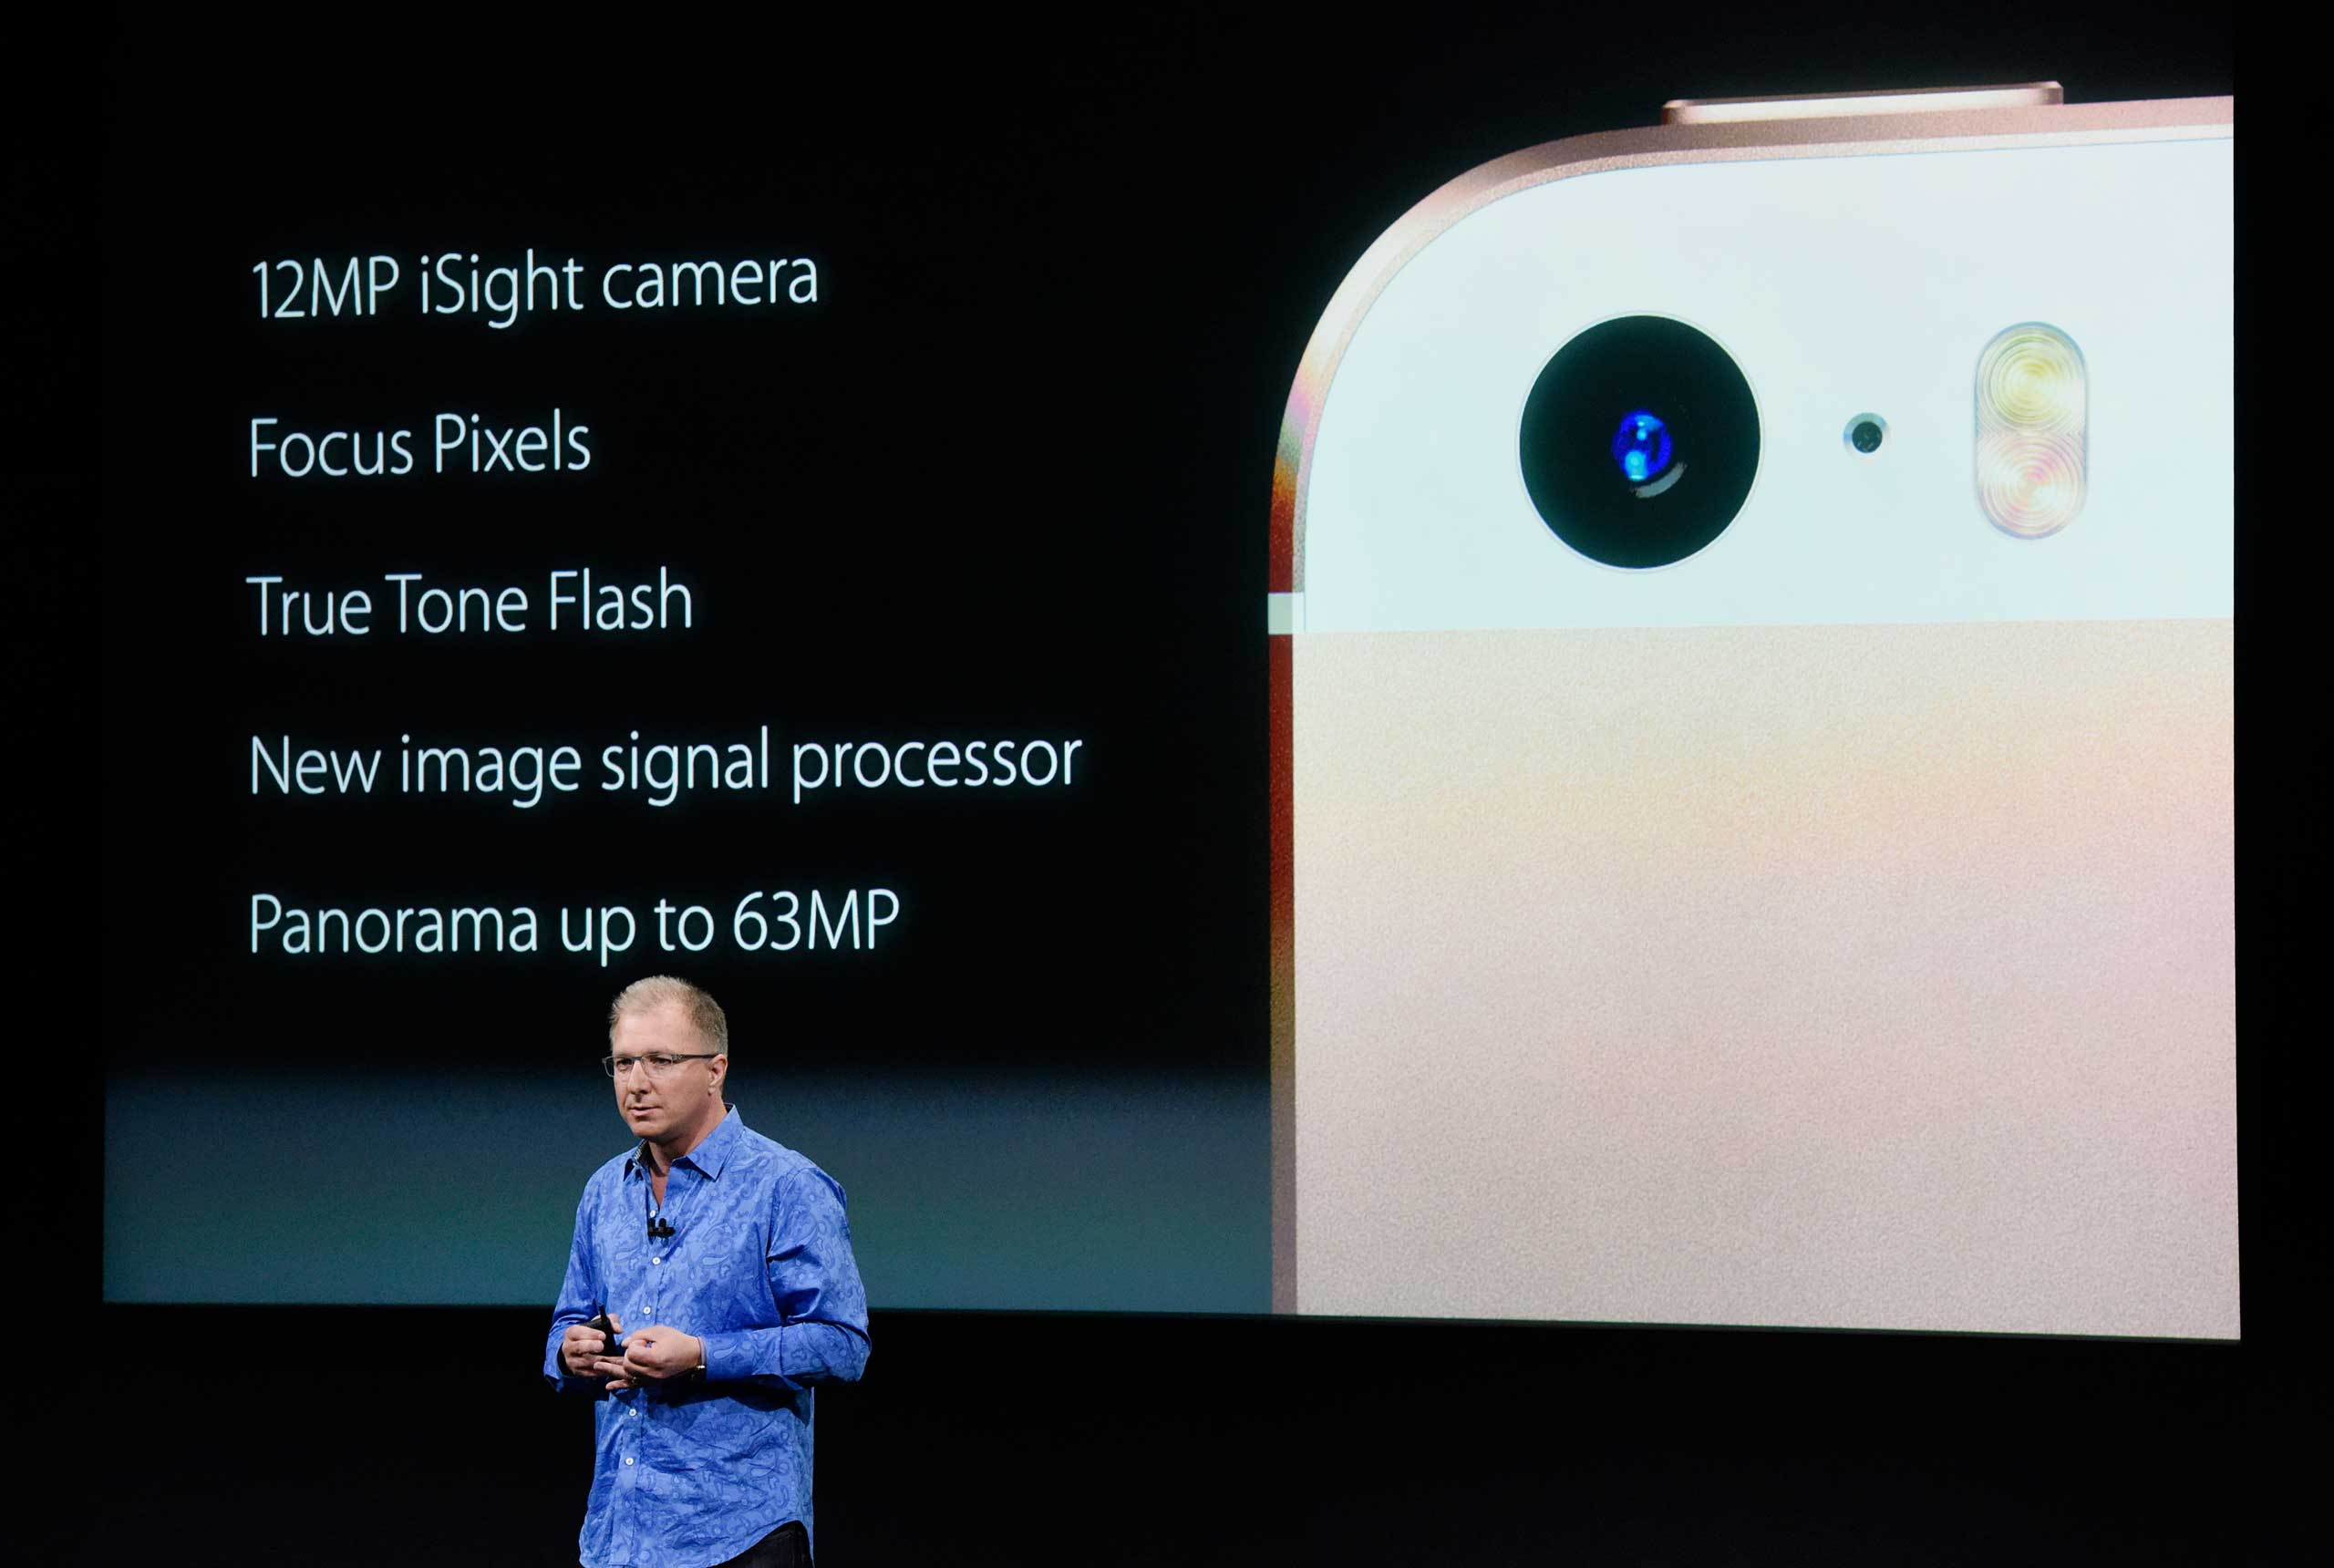 Greg Joswiak, vice president of iPod, iPhone, and iOS product marketing for Apple Inc., announces the iPhone SE smartphone during an Apple event in Cupertino, Calif., on March 21, 2016.